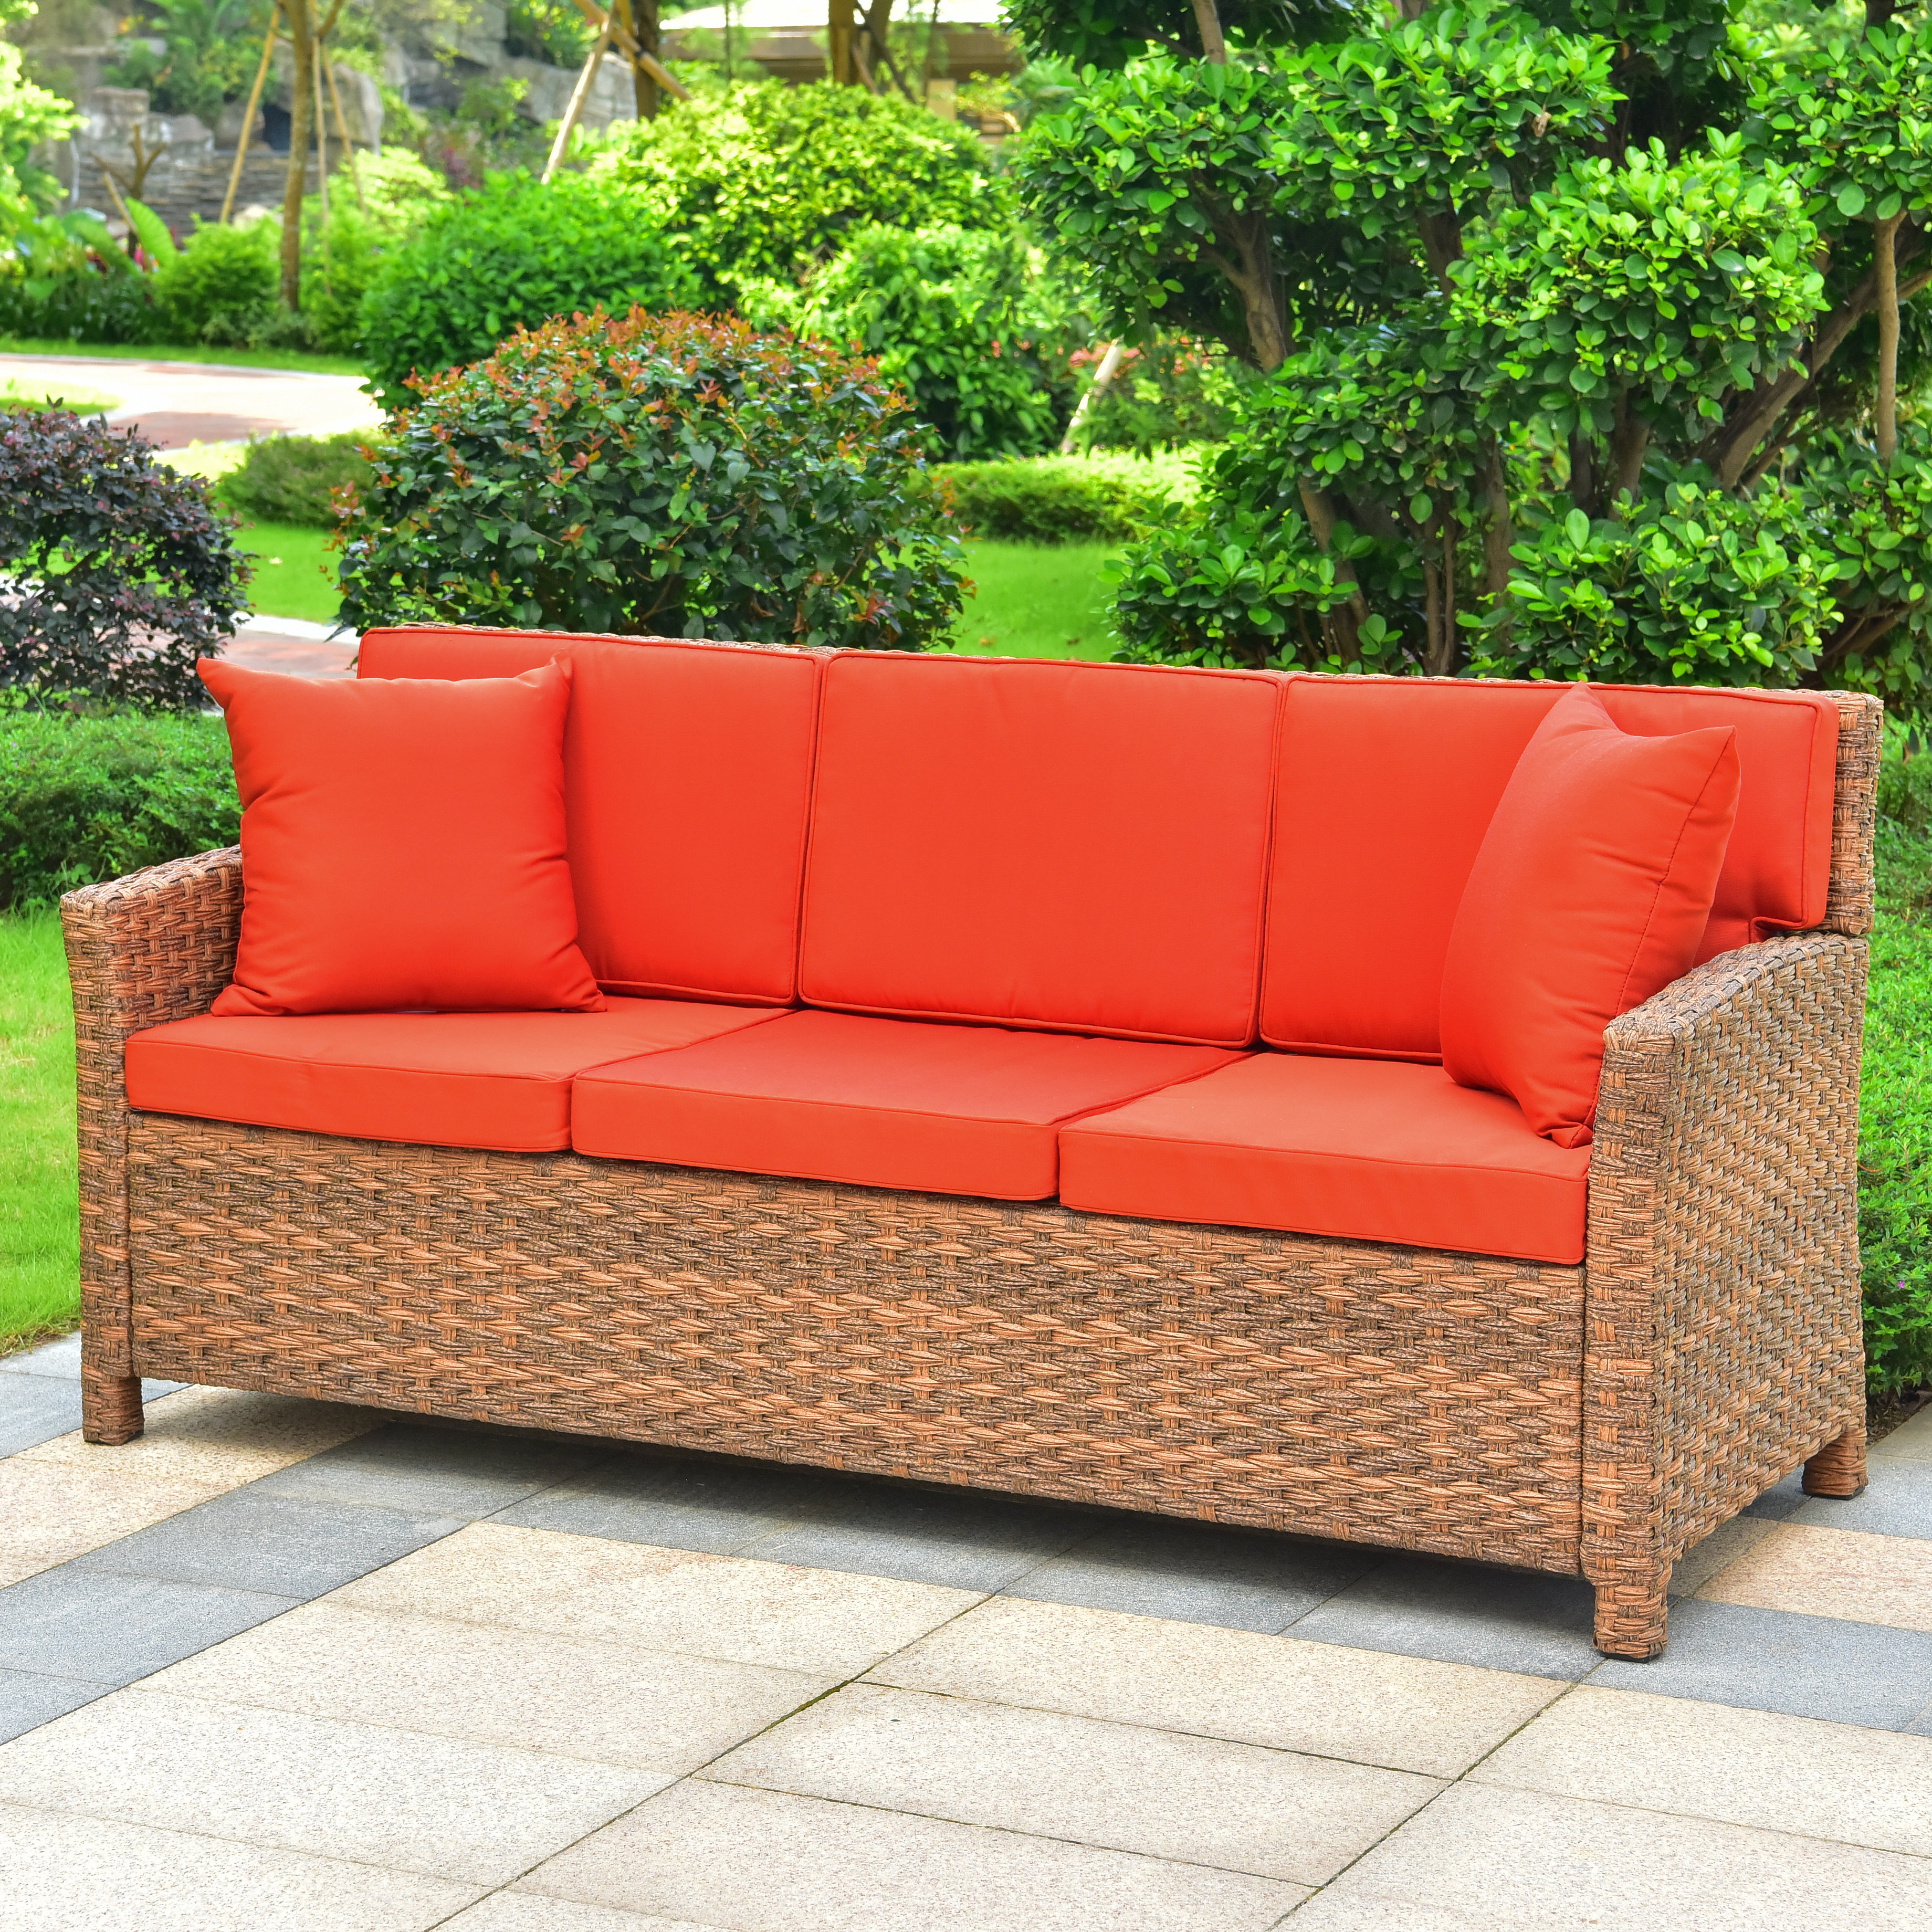 Deanna Resin Wicker Patio Sofa With Cushions Within Most Current Katzer Patio Sofas With Cushions (View 5 of 20)